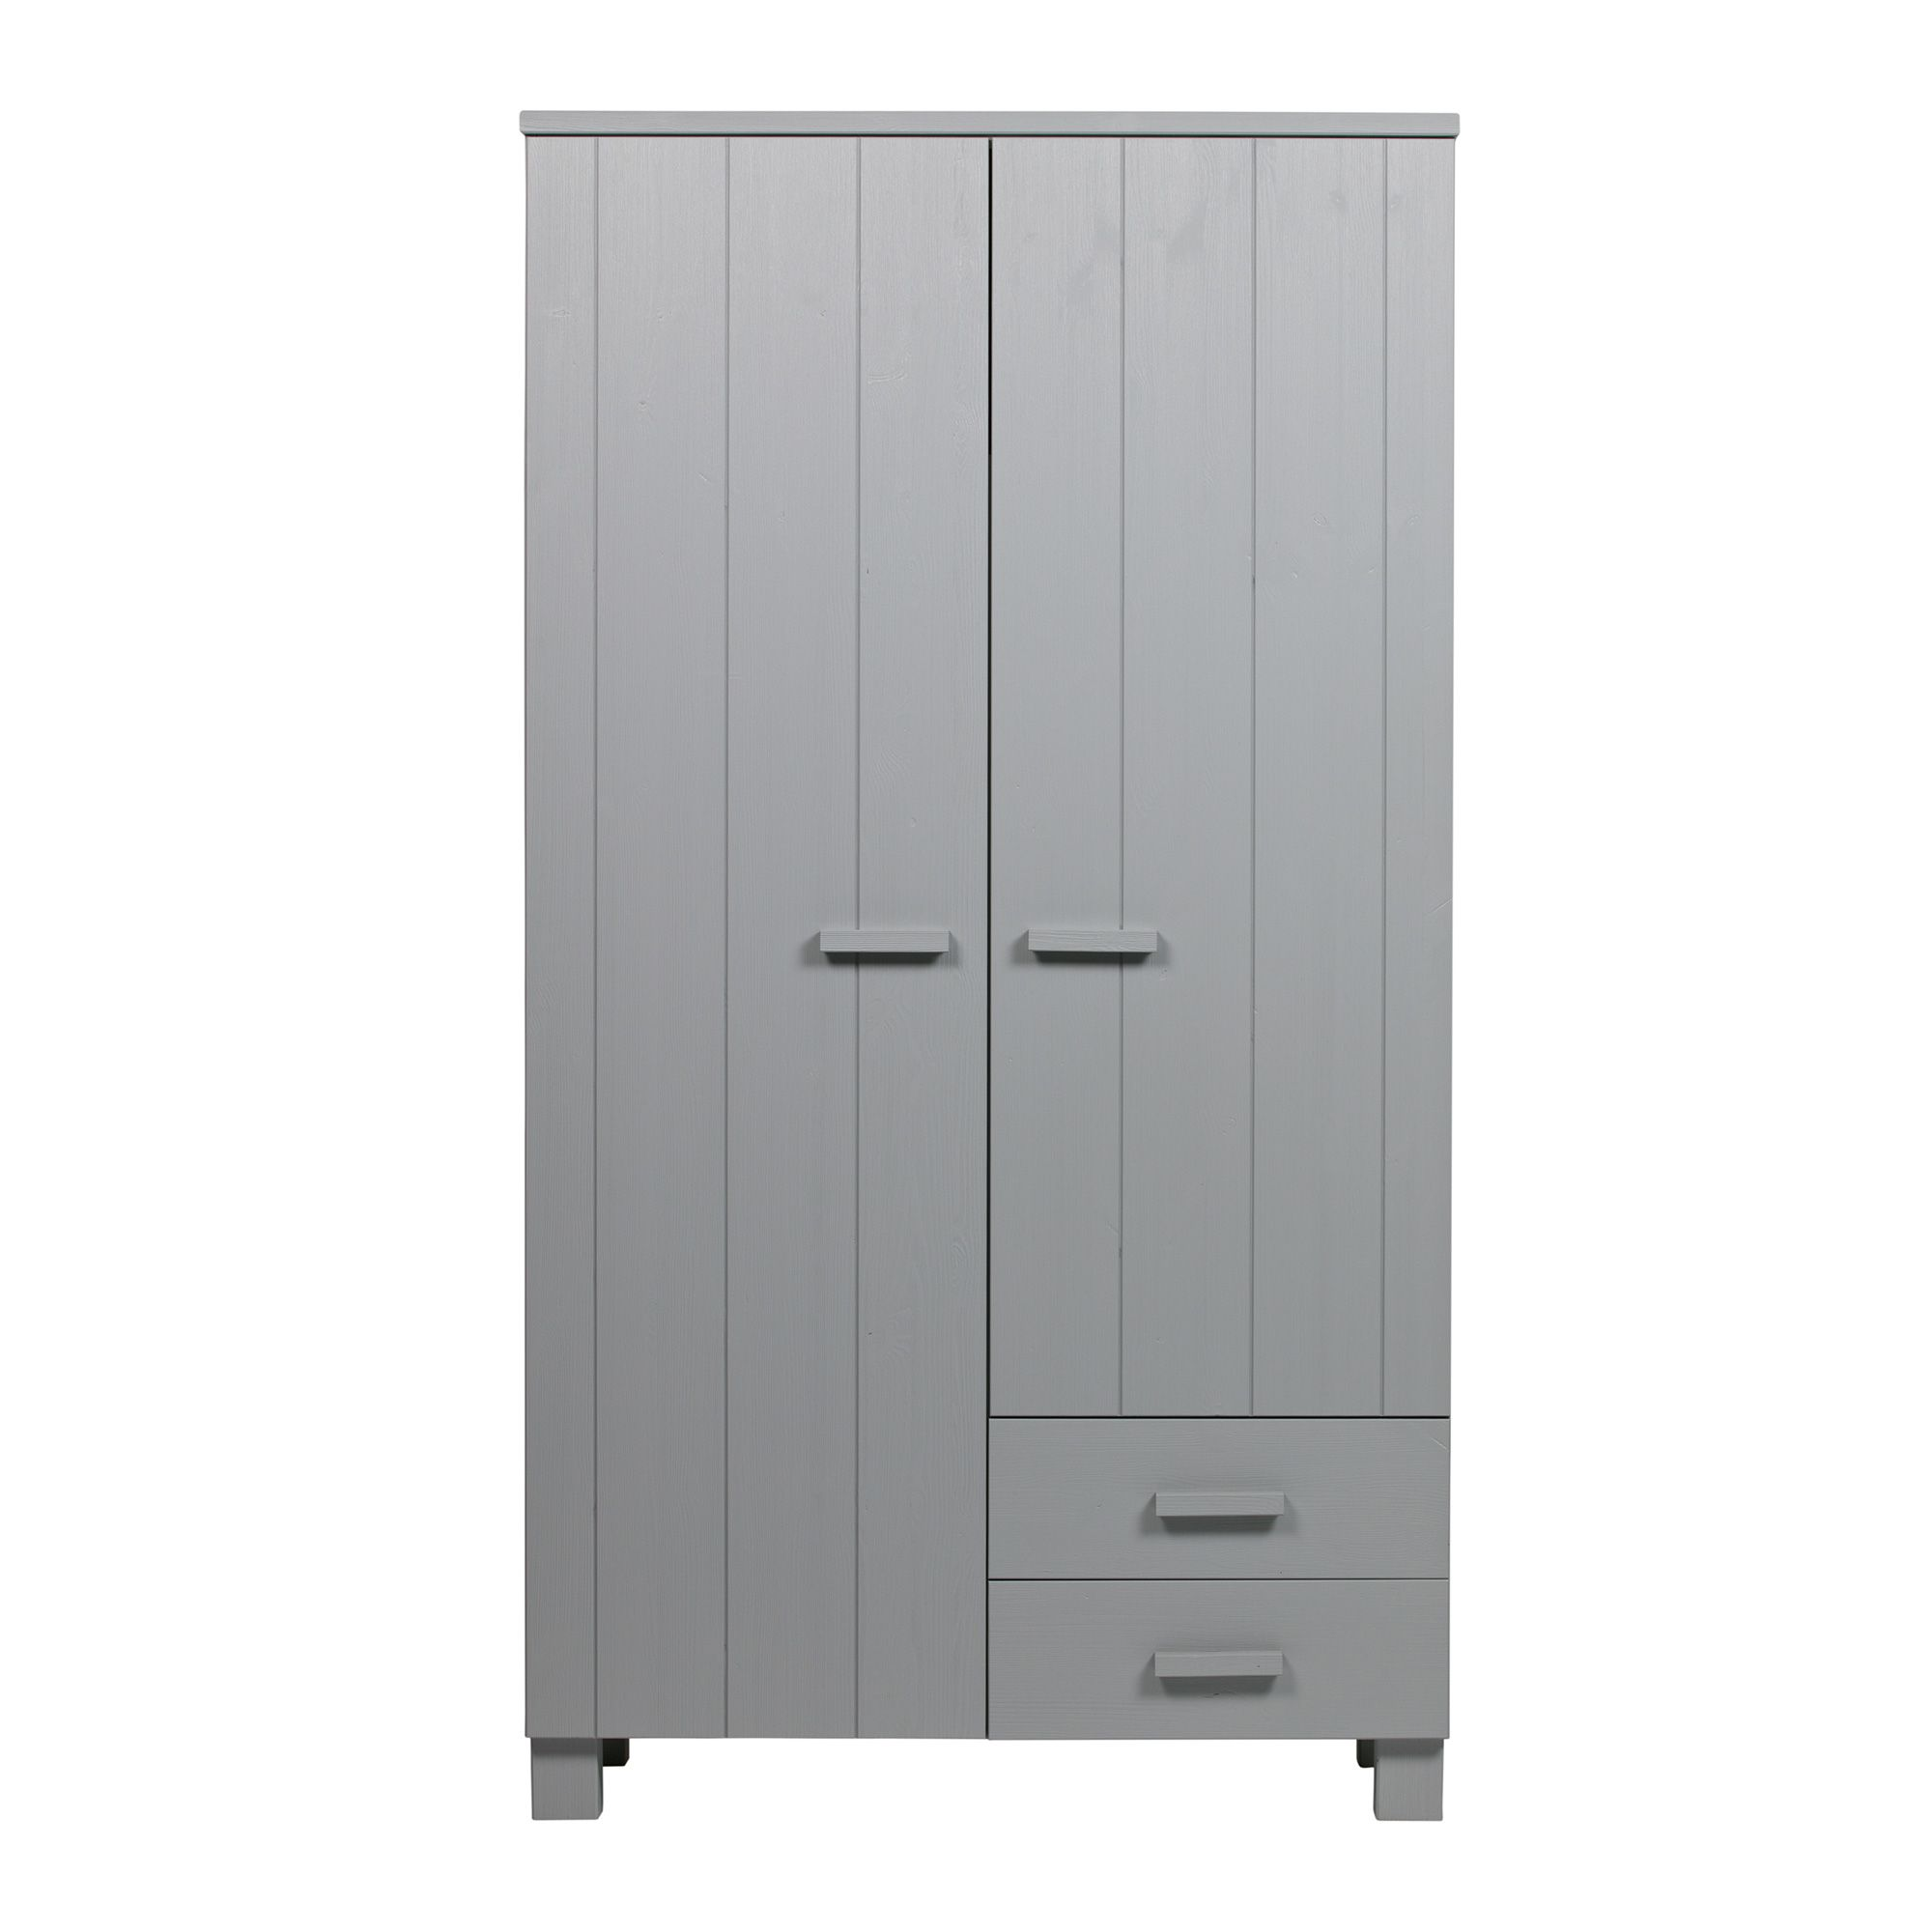 Woood Woood Dennis 2 Door Wardrobe 2 Drawers Concrete Grey Meubles - Woood Bed Dennis